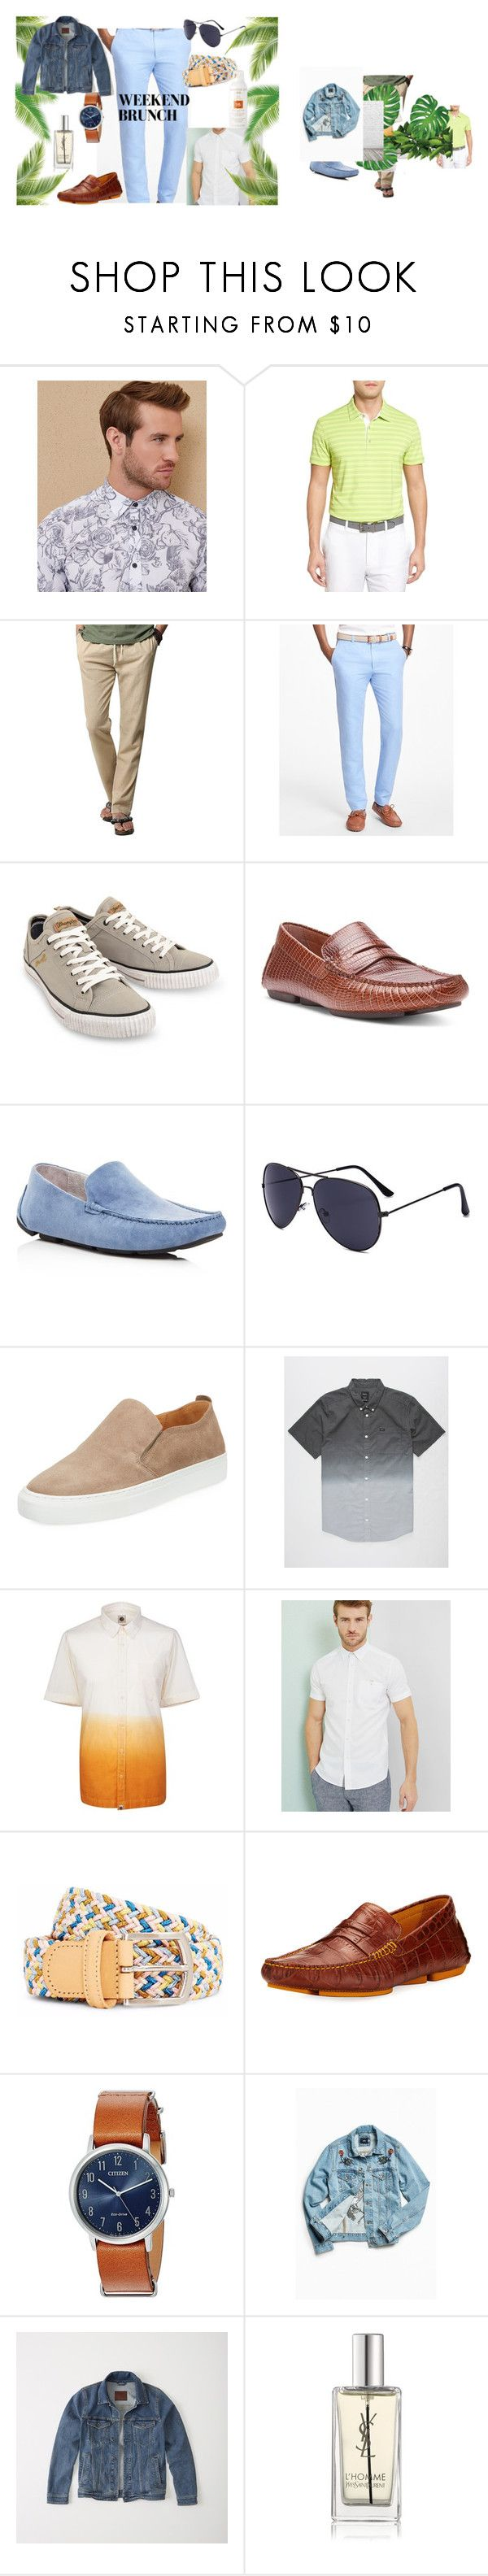 """""""ChristinaD - Bombfell"""" by birdhouse-id on Polyvore featuring Ted Baker, Bobby Jones, Brooks Brothers, Wrangler, Donald J Pliner, Kenneth Cole, Supply Lab, RVCA, Pretty Green and The Idle Man"""